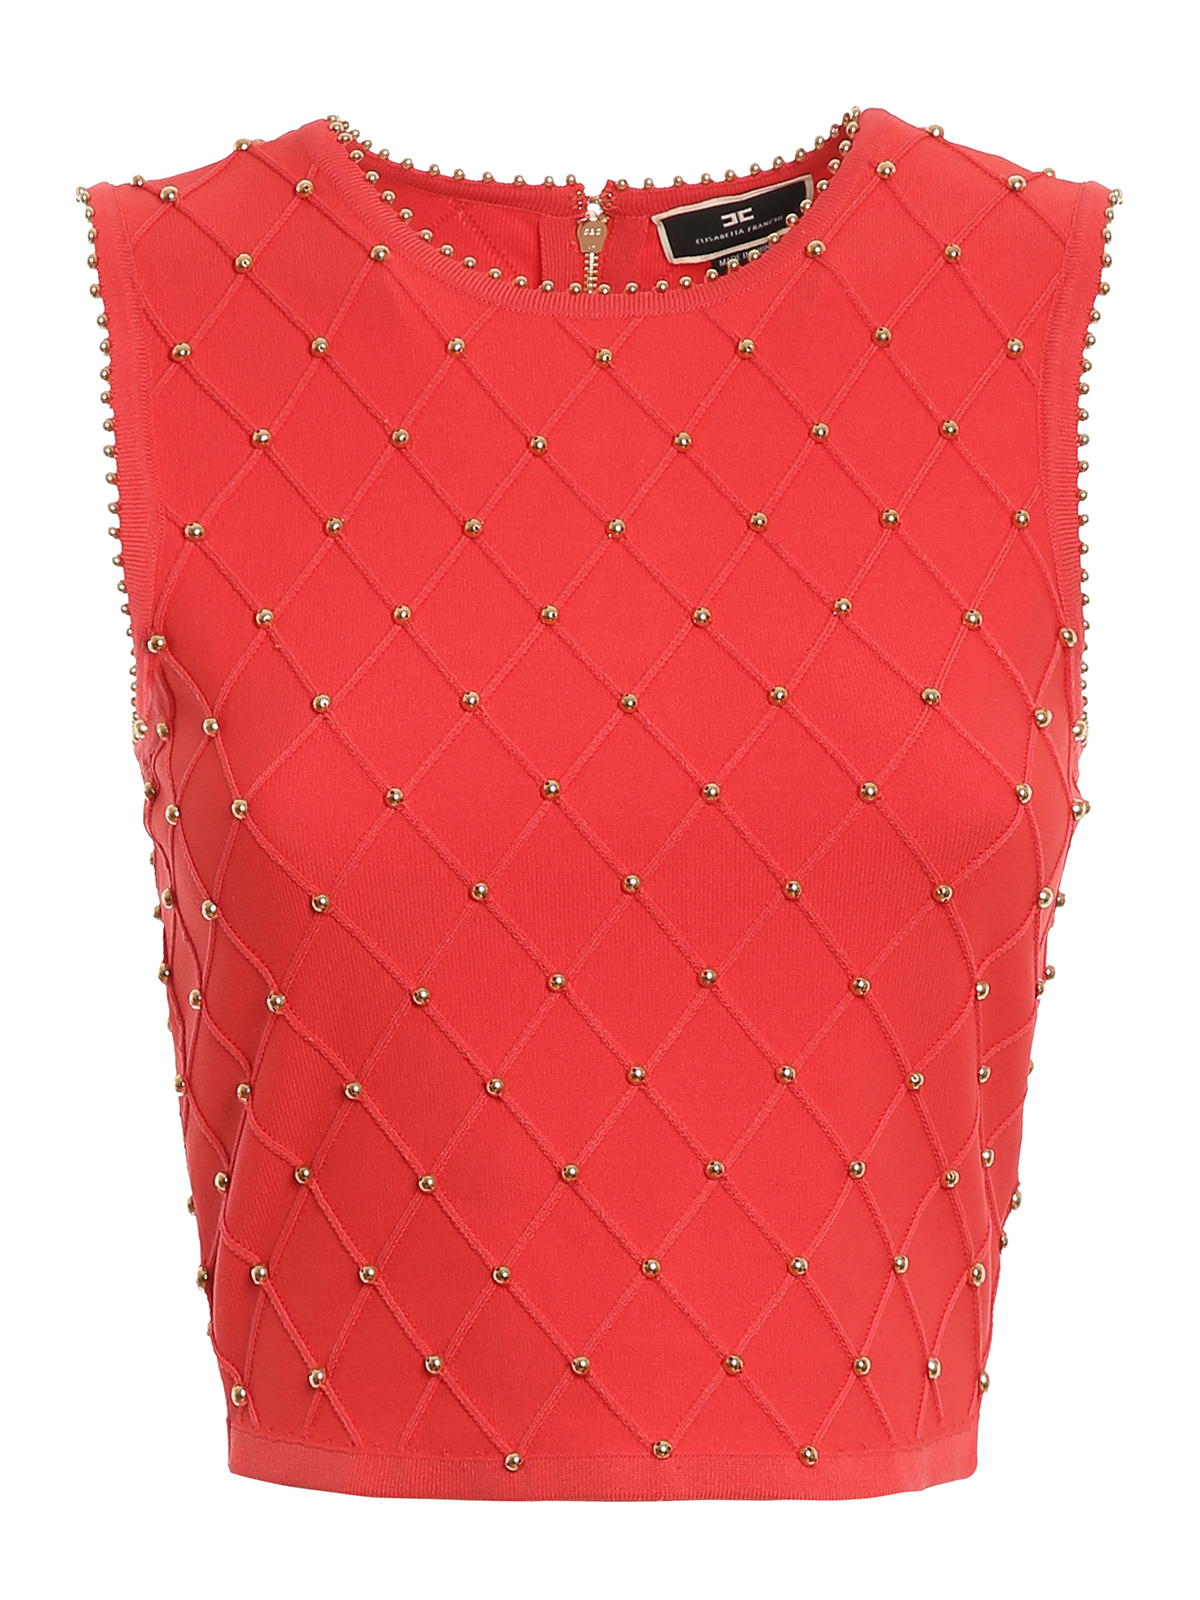 Elisabetta Franchi Knits STUDDED KNITTED TOP